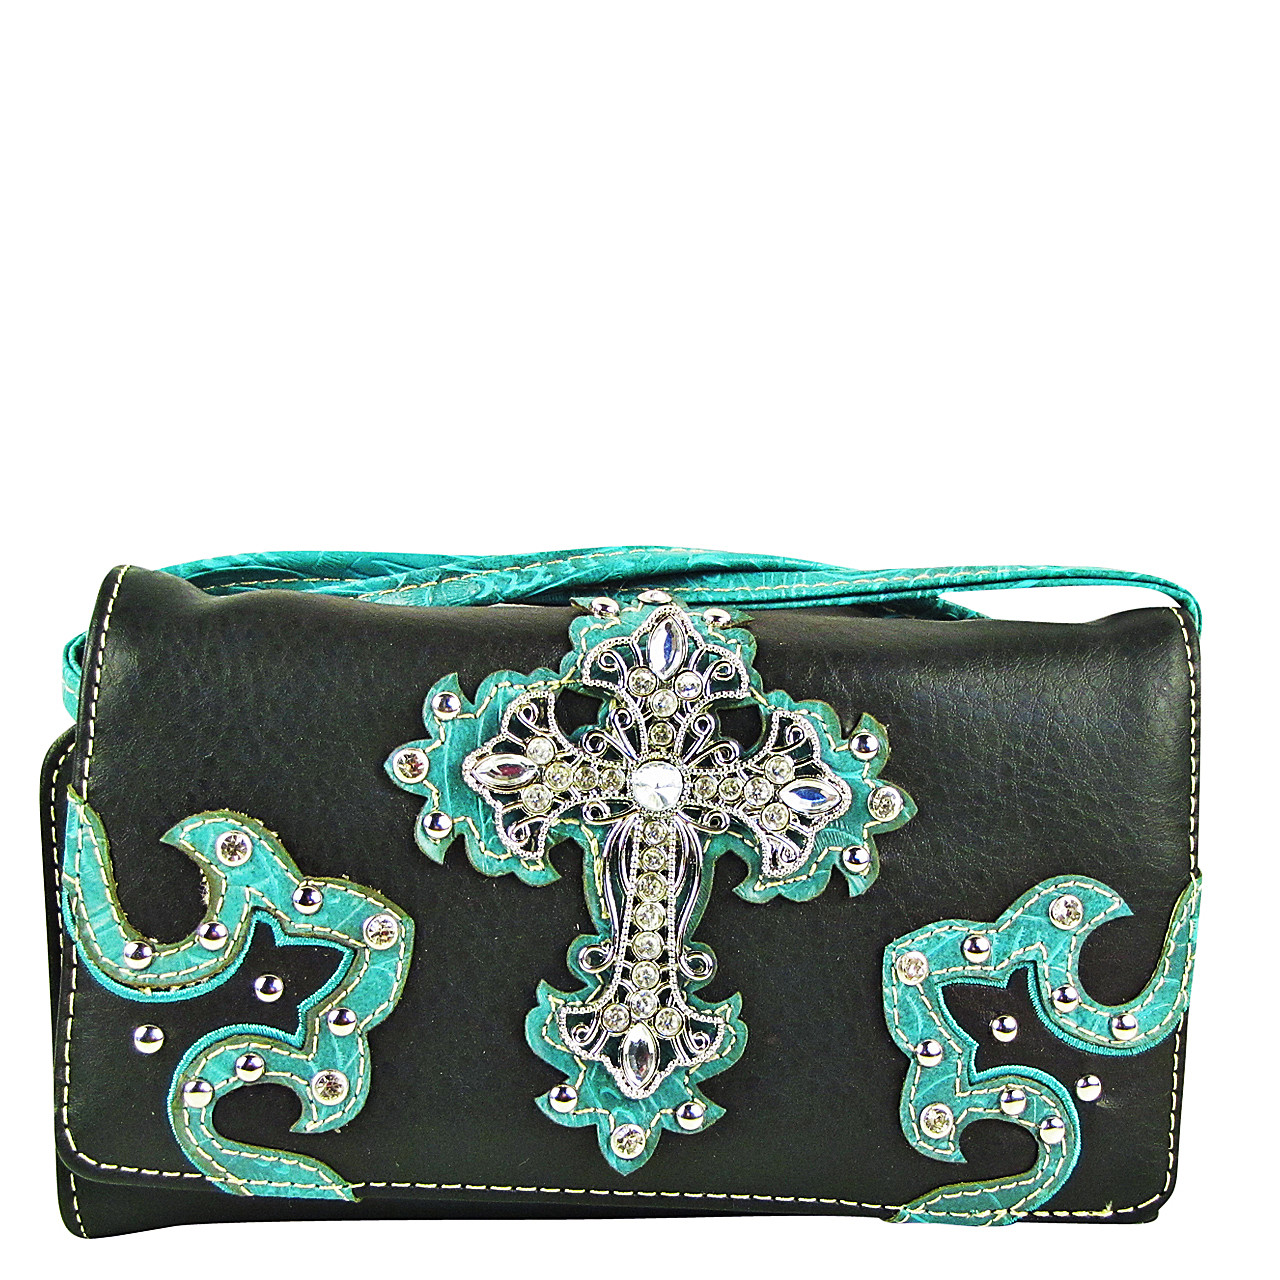 TURQUOISE RHINESTONE CROSS STITCHING LEATHERETTE LOOK CLUTCH TRIFOLD WALLET CW1-0478TRQ